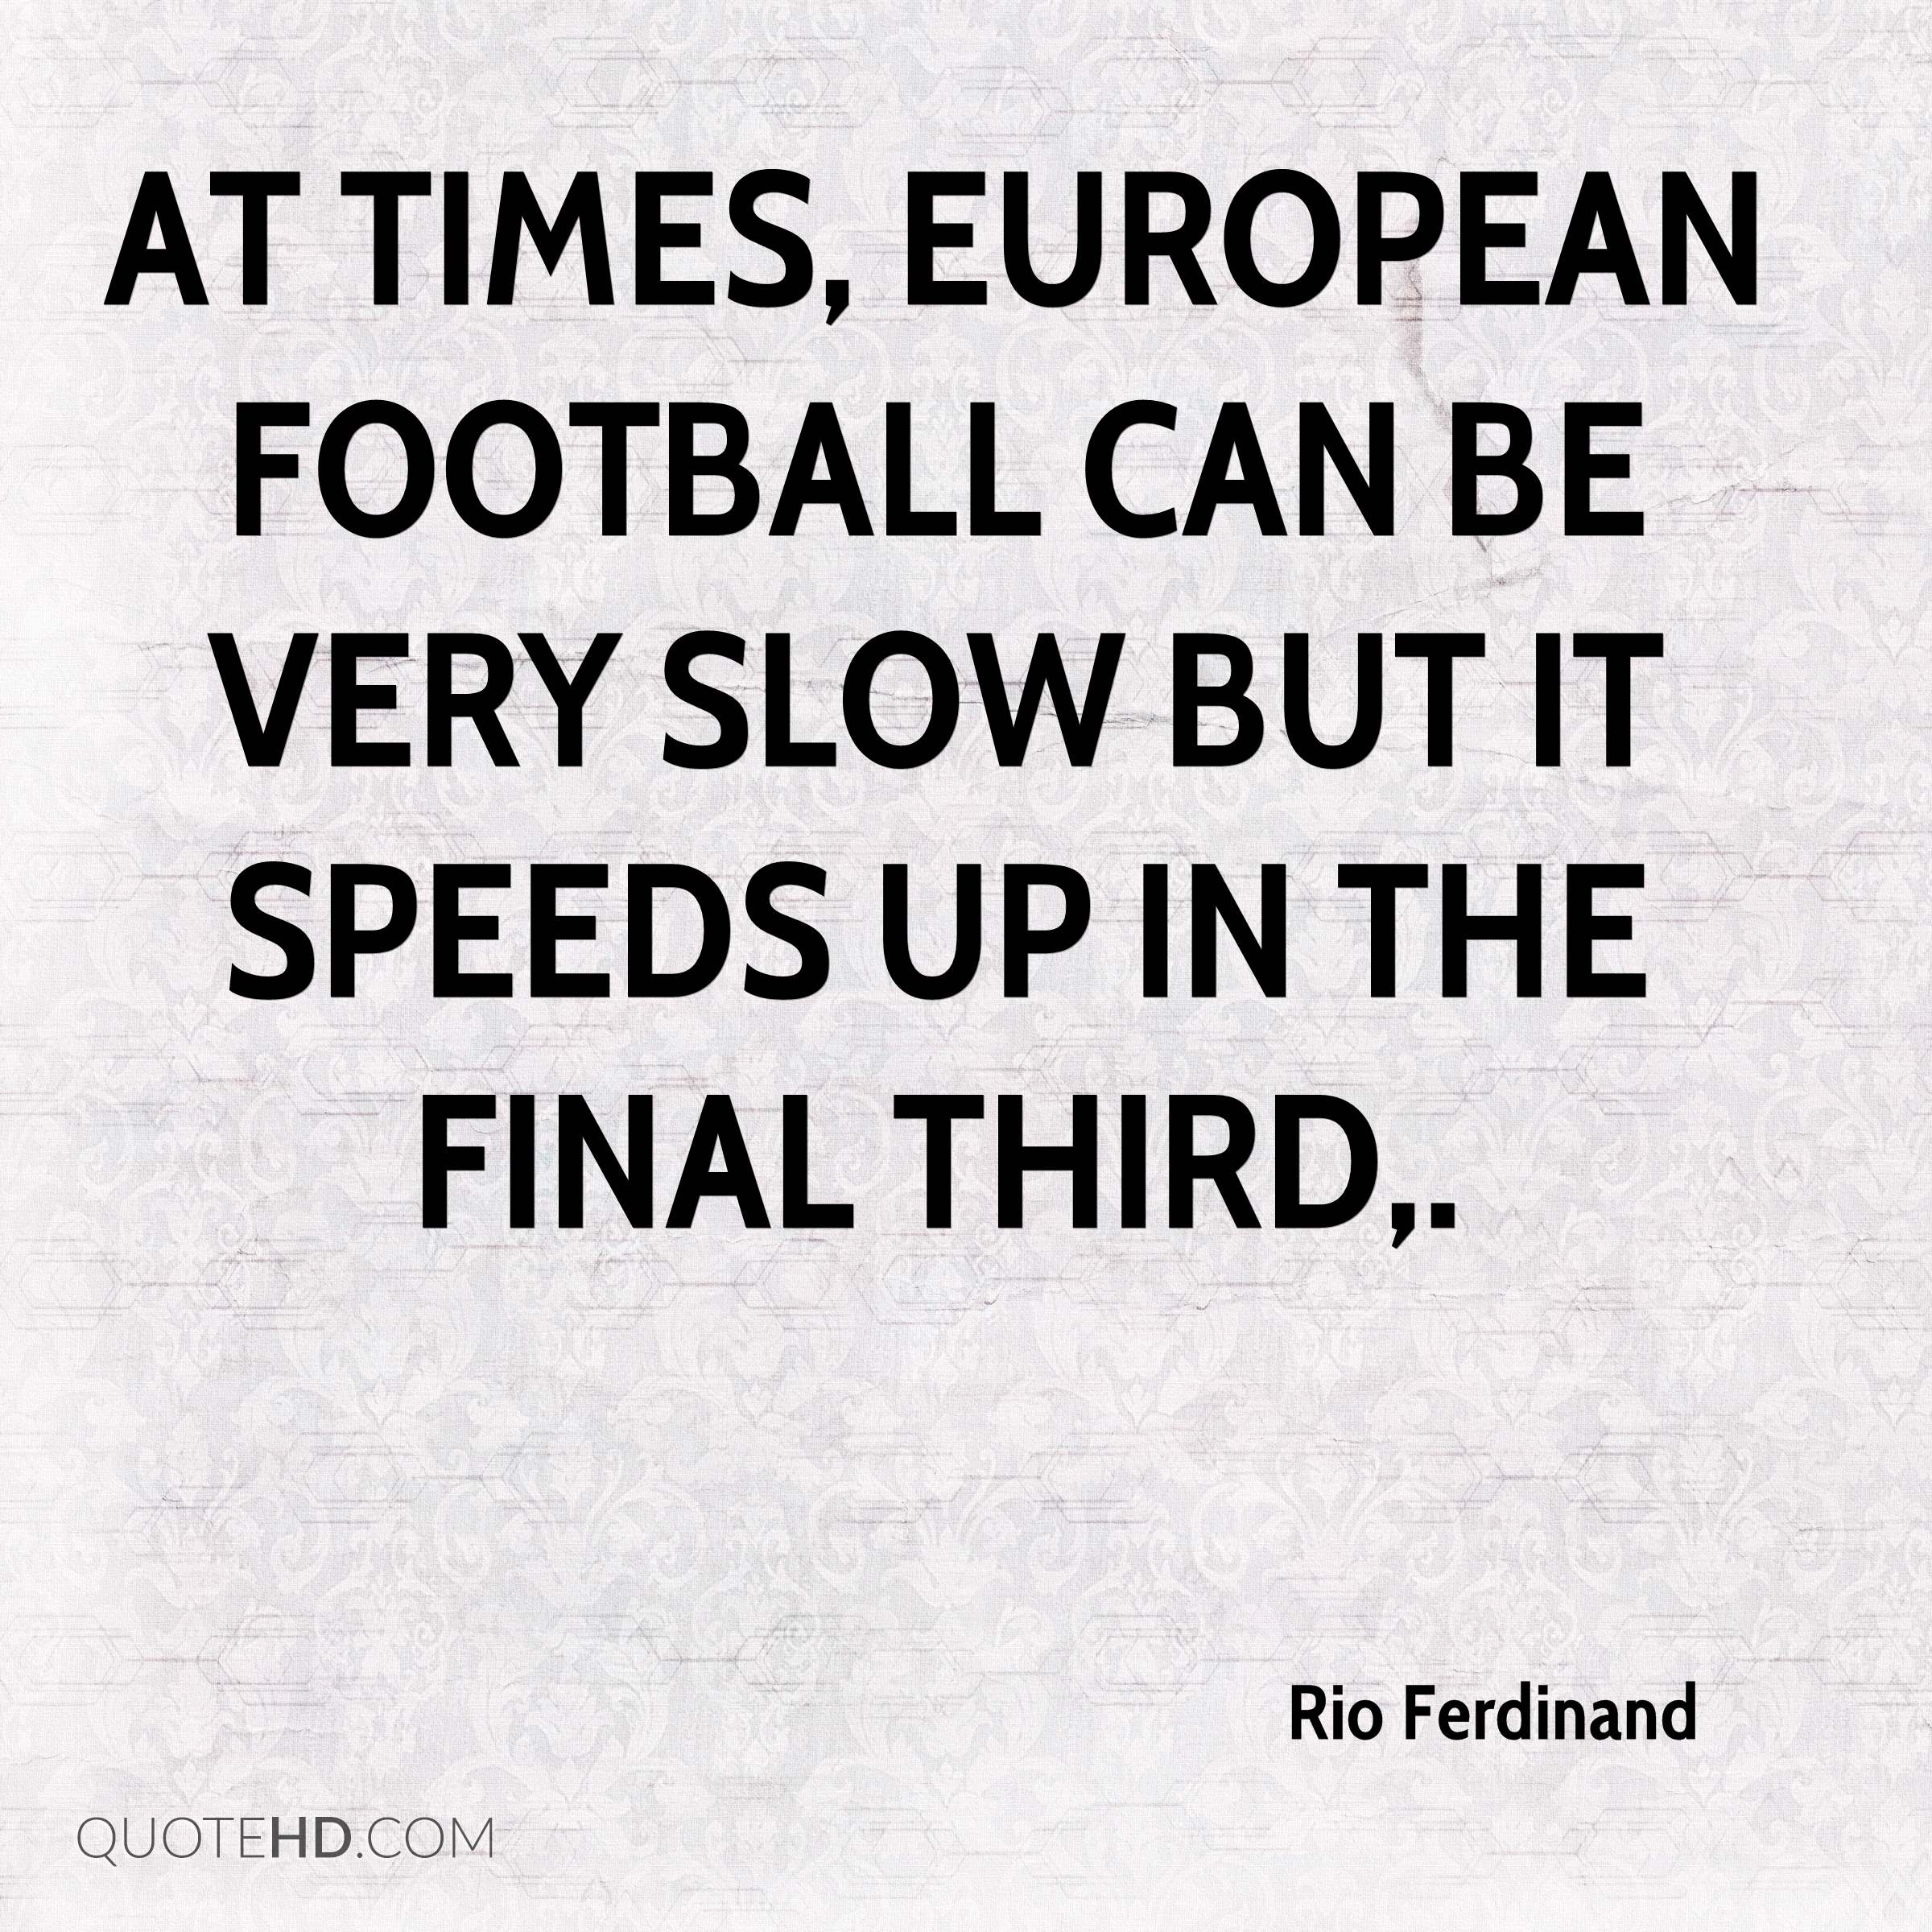 At times, European football can be very slow but it speeds up in the final third.